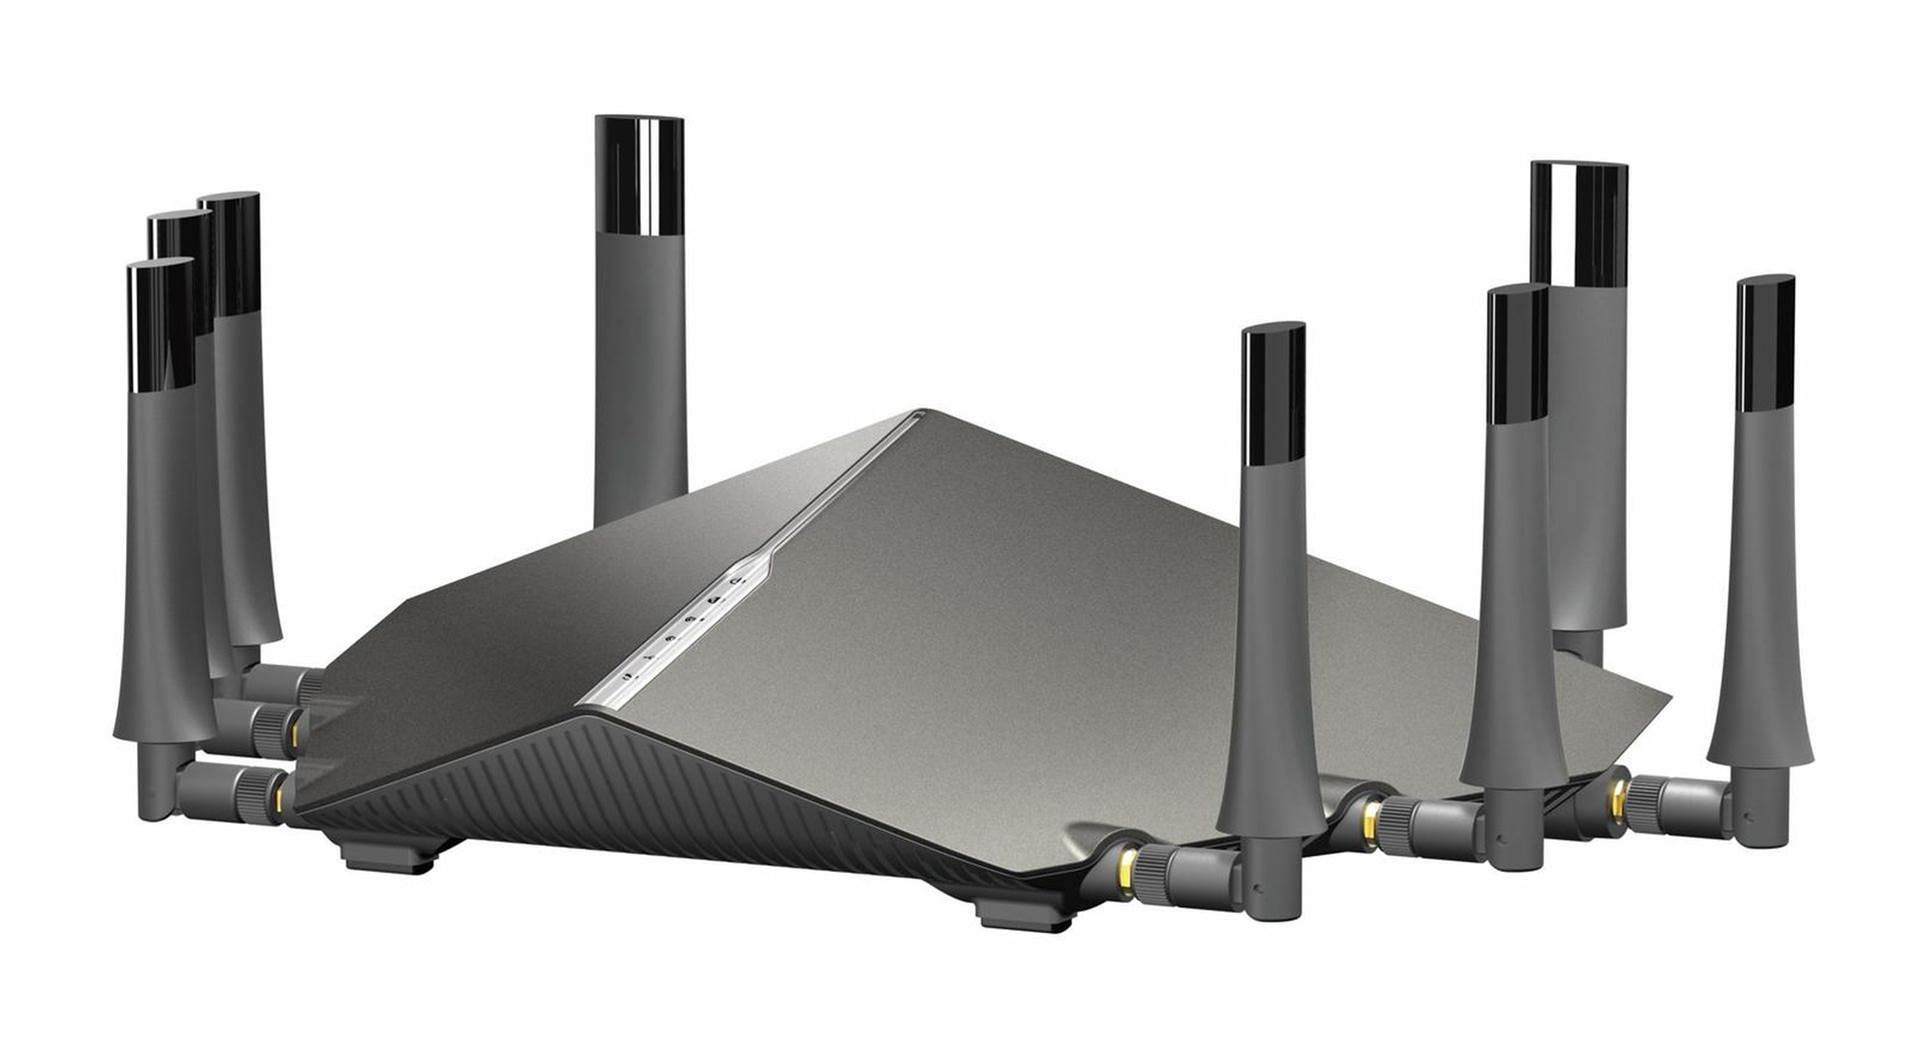 Review: D-Link DSL-5300 Cobra AC5300 MU-MIMO Wi-Fi Modem Router